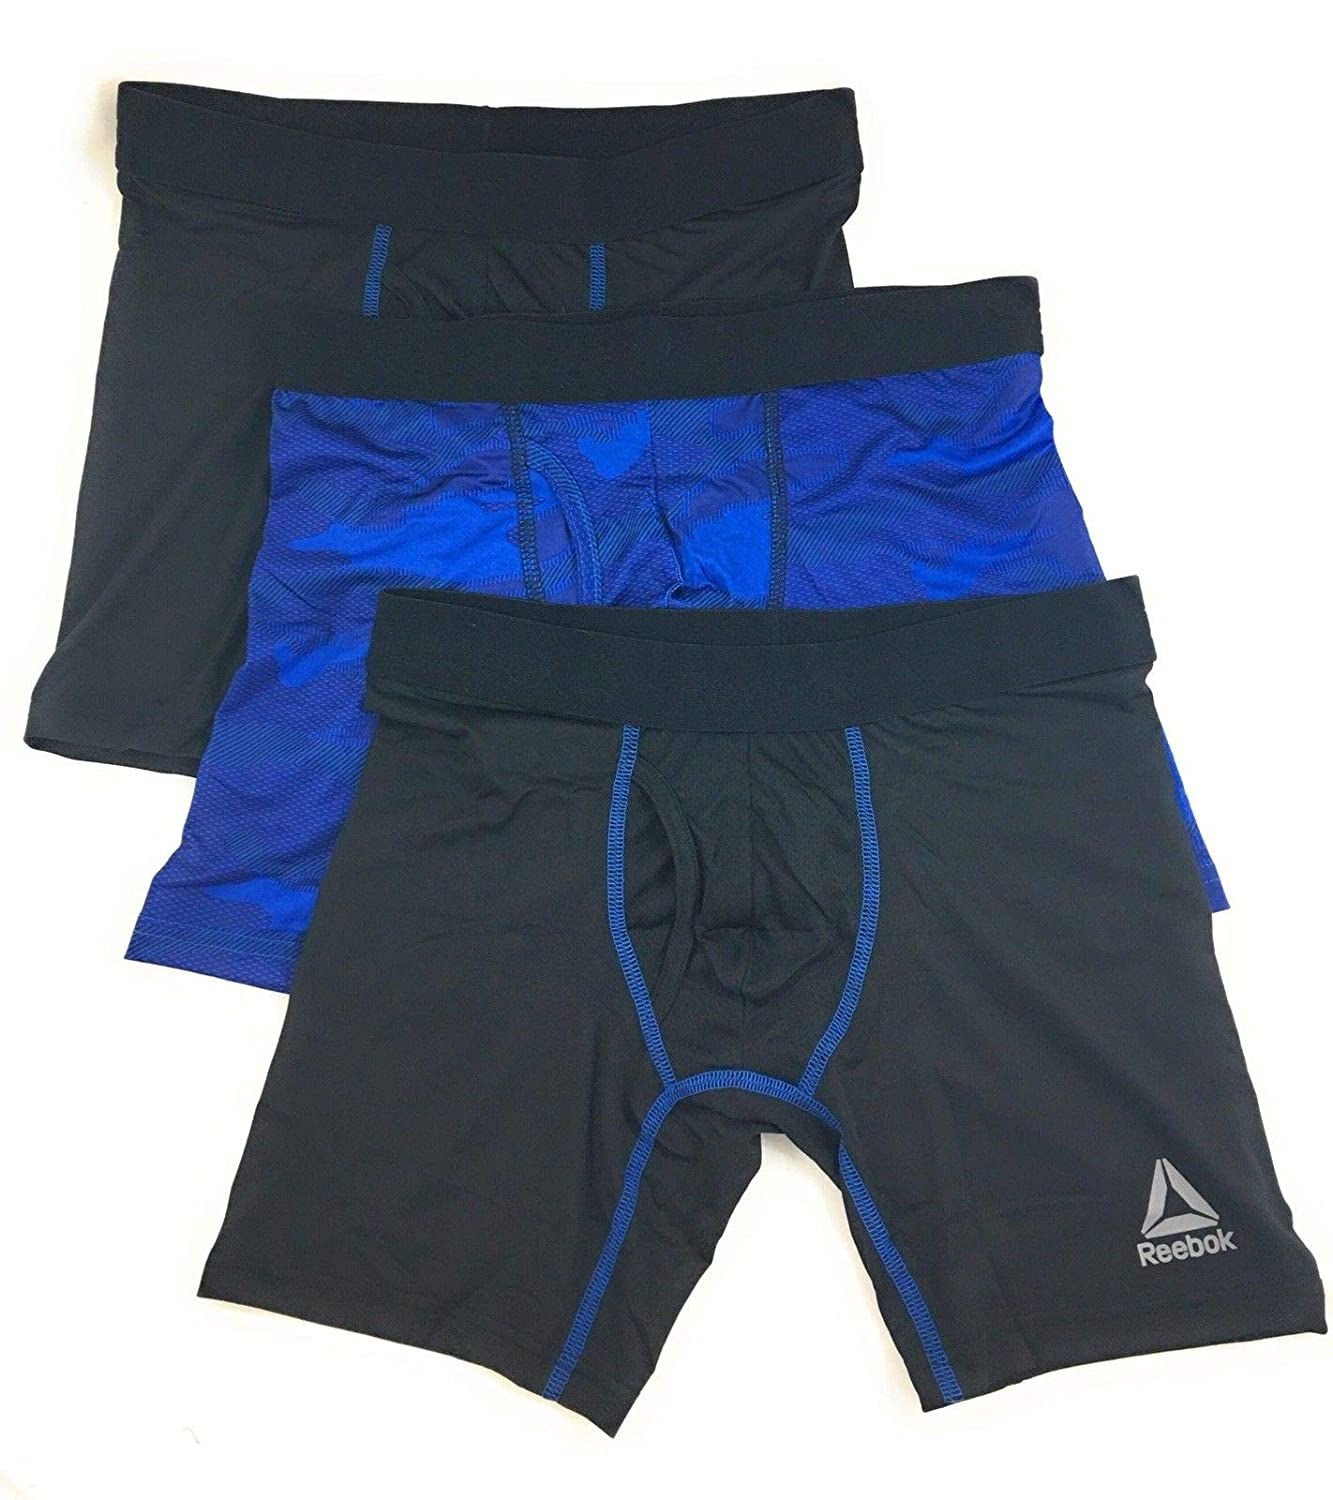 Reebok Mens Breathable 3 Pack Boxer Briefs Unknown